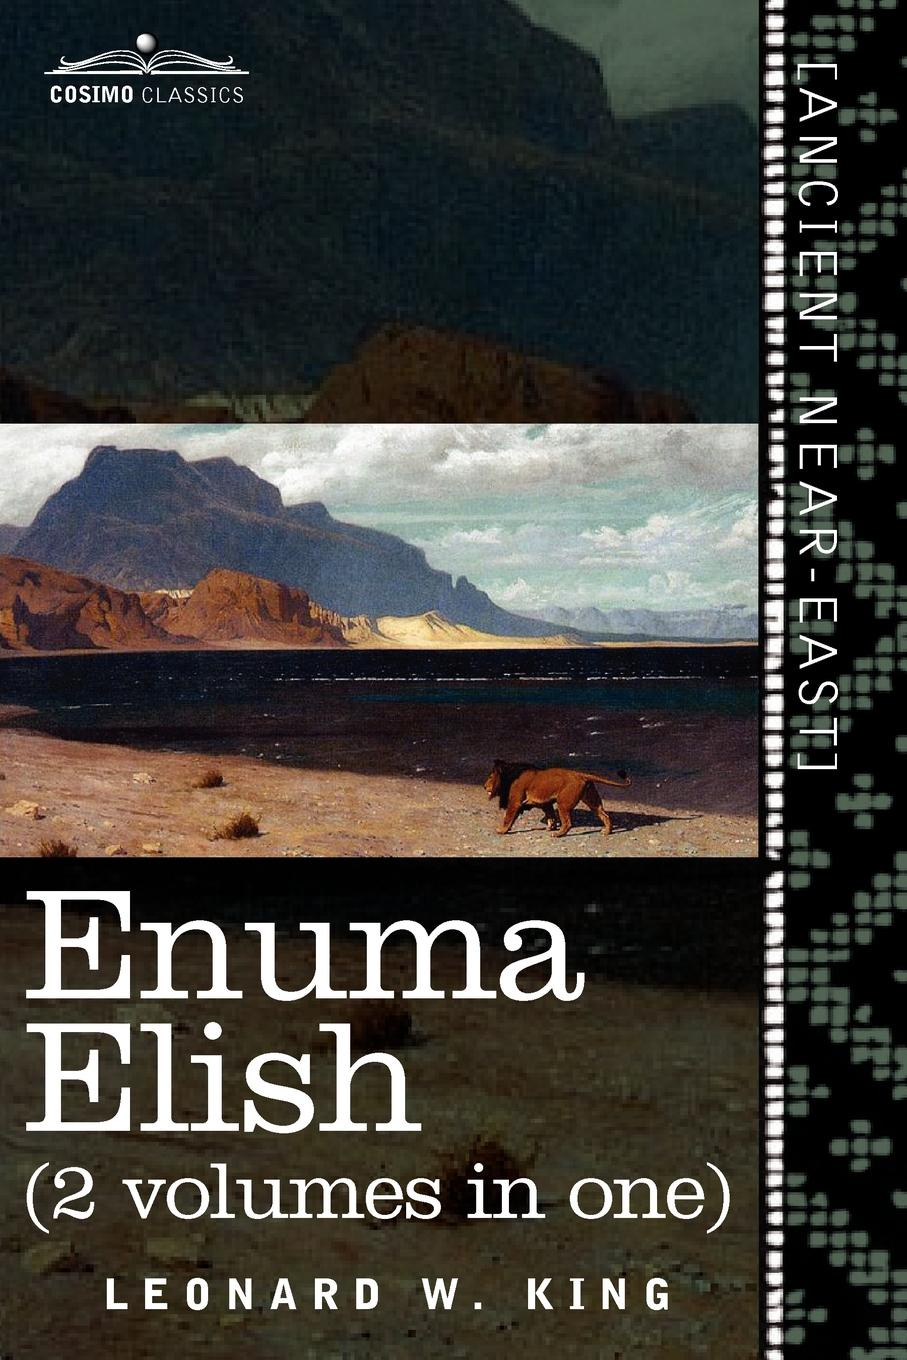 L. W. King, Leonard W. King Enuma Elish (2 Volumes in One). The Seven Tablets of Creation; The Babylonian and Assyrian Legends Concerning the Creation of the World and of Mankind engel w king muscle aging inclusion body myositis and myopathies